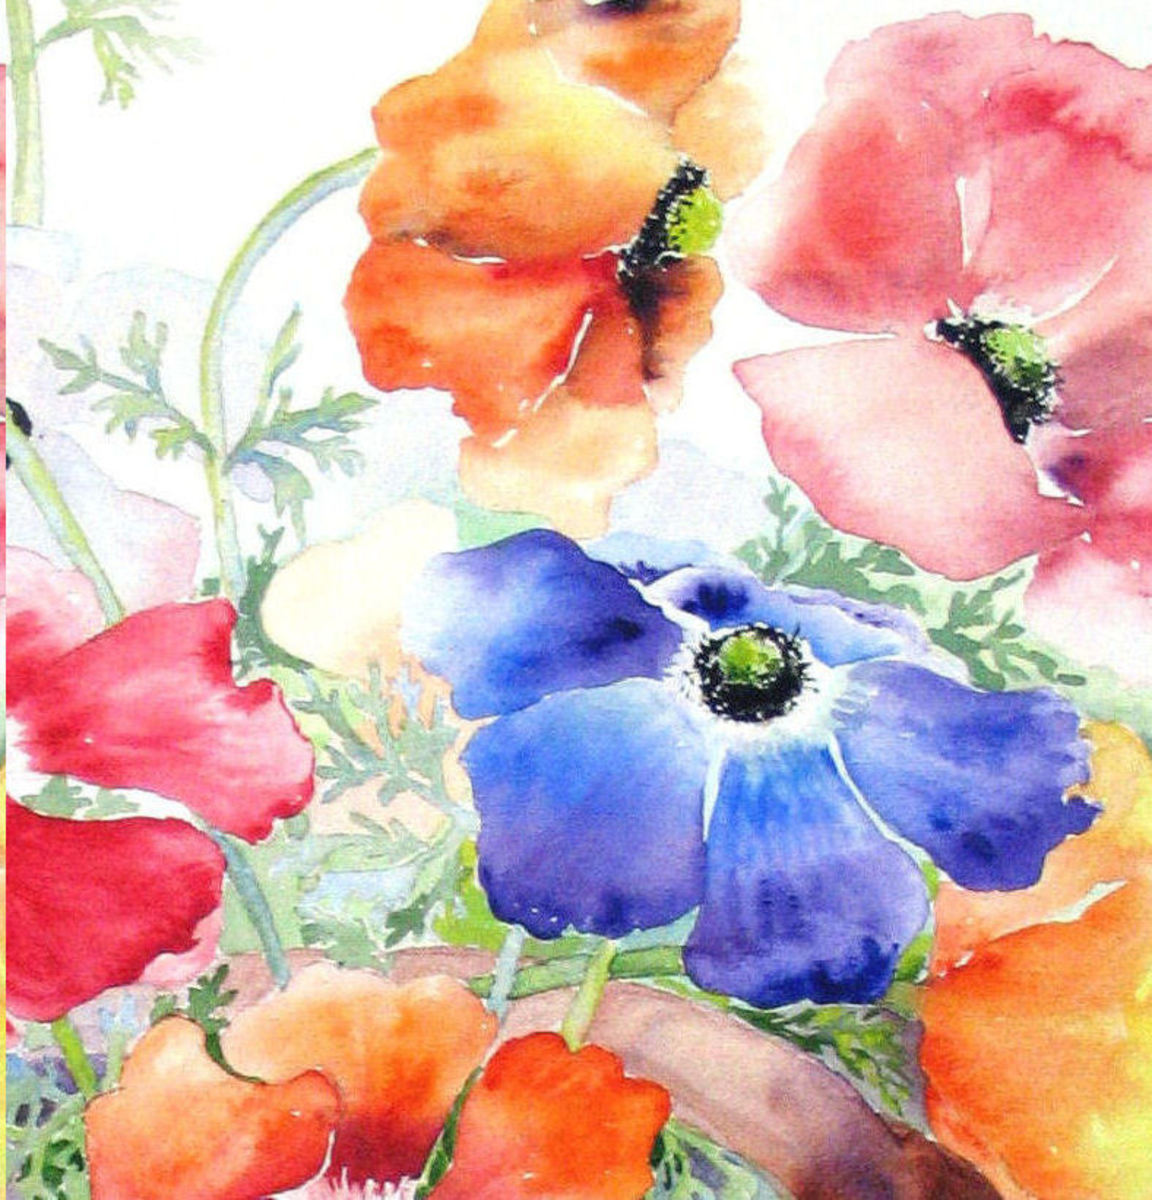 DON'T BE AFRAID TO PAINT WITH WATERCOLORS Try this exercize.